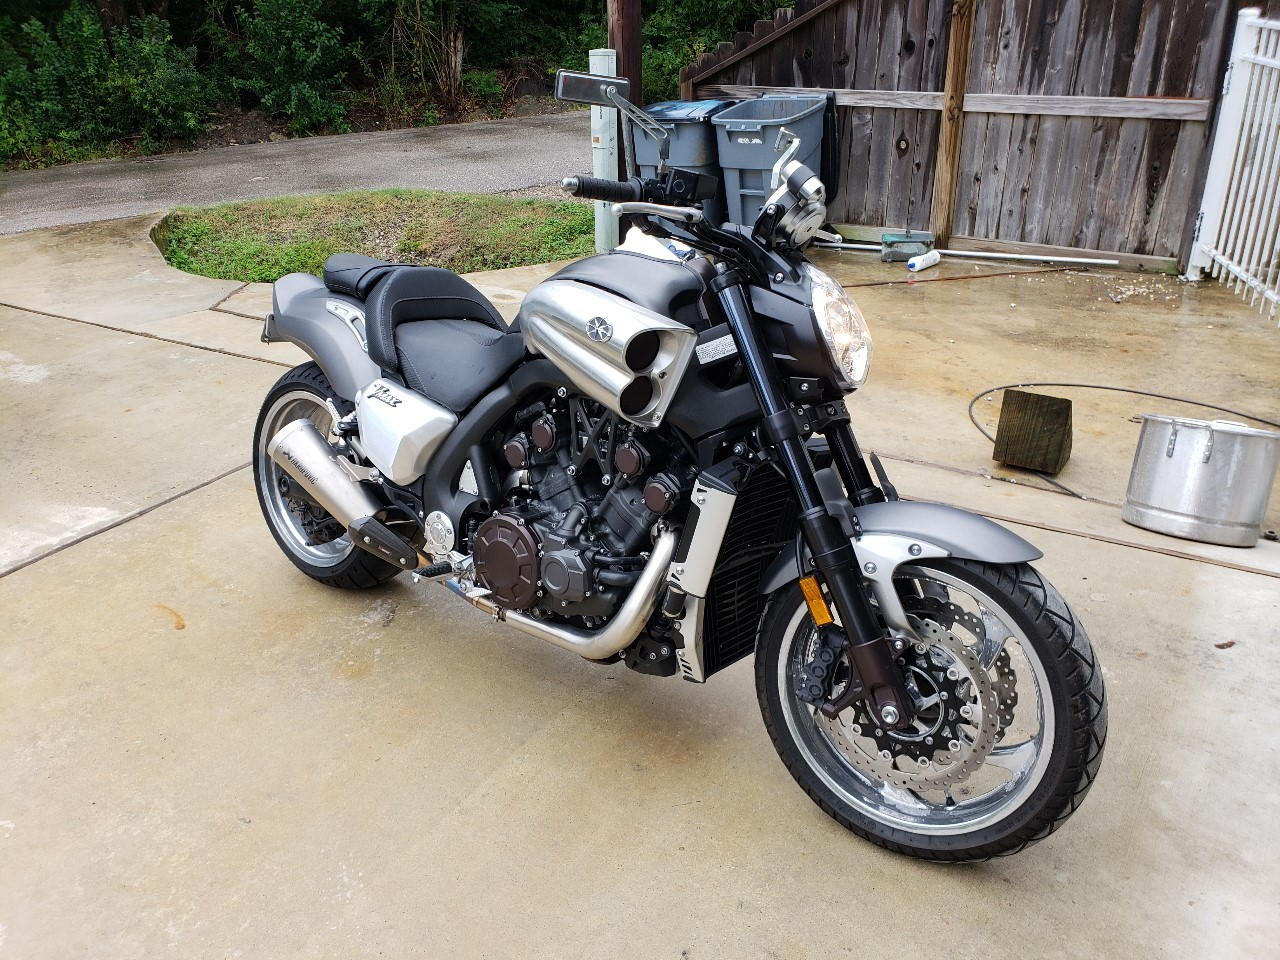 8 2014 Yamaha Vmax Motorcycles For Sale Cycle Trader Ignition Switch Wiring